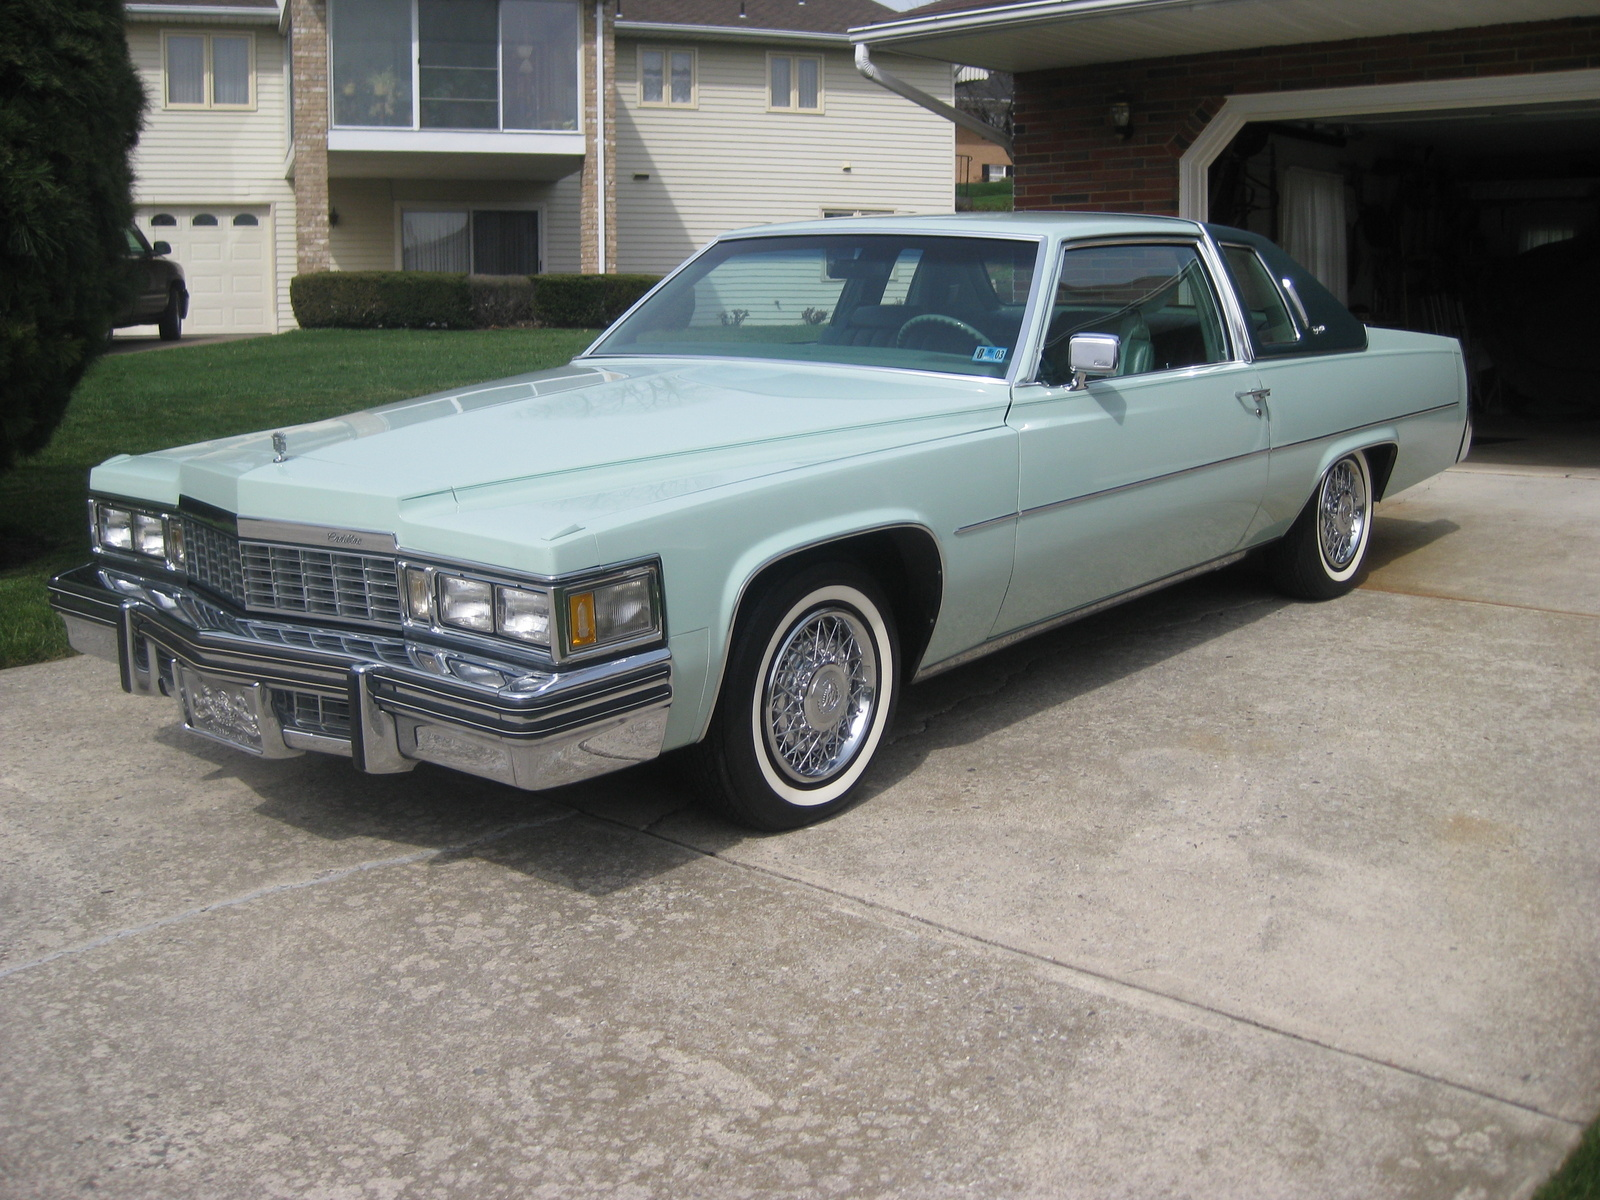 1977 Cadillac DeVille - Pictures - Picture of 1977 Cadillac DeVil ...